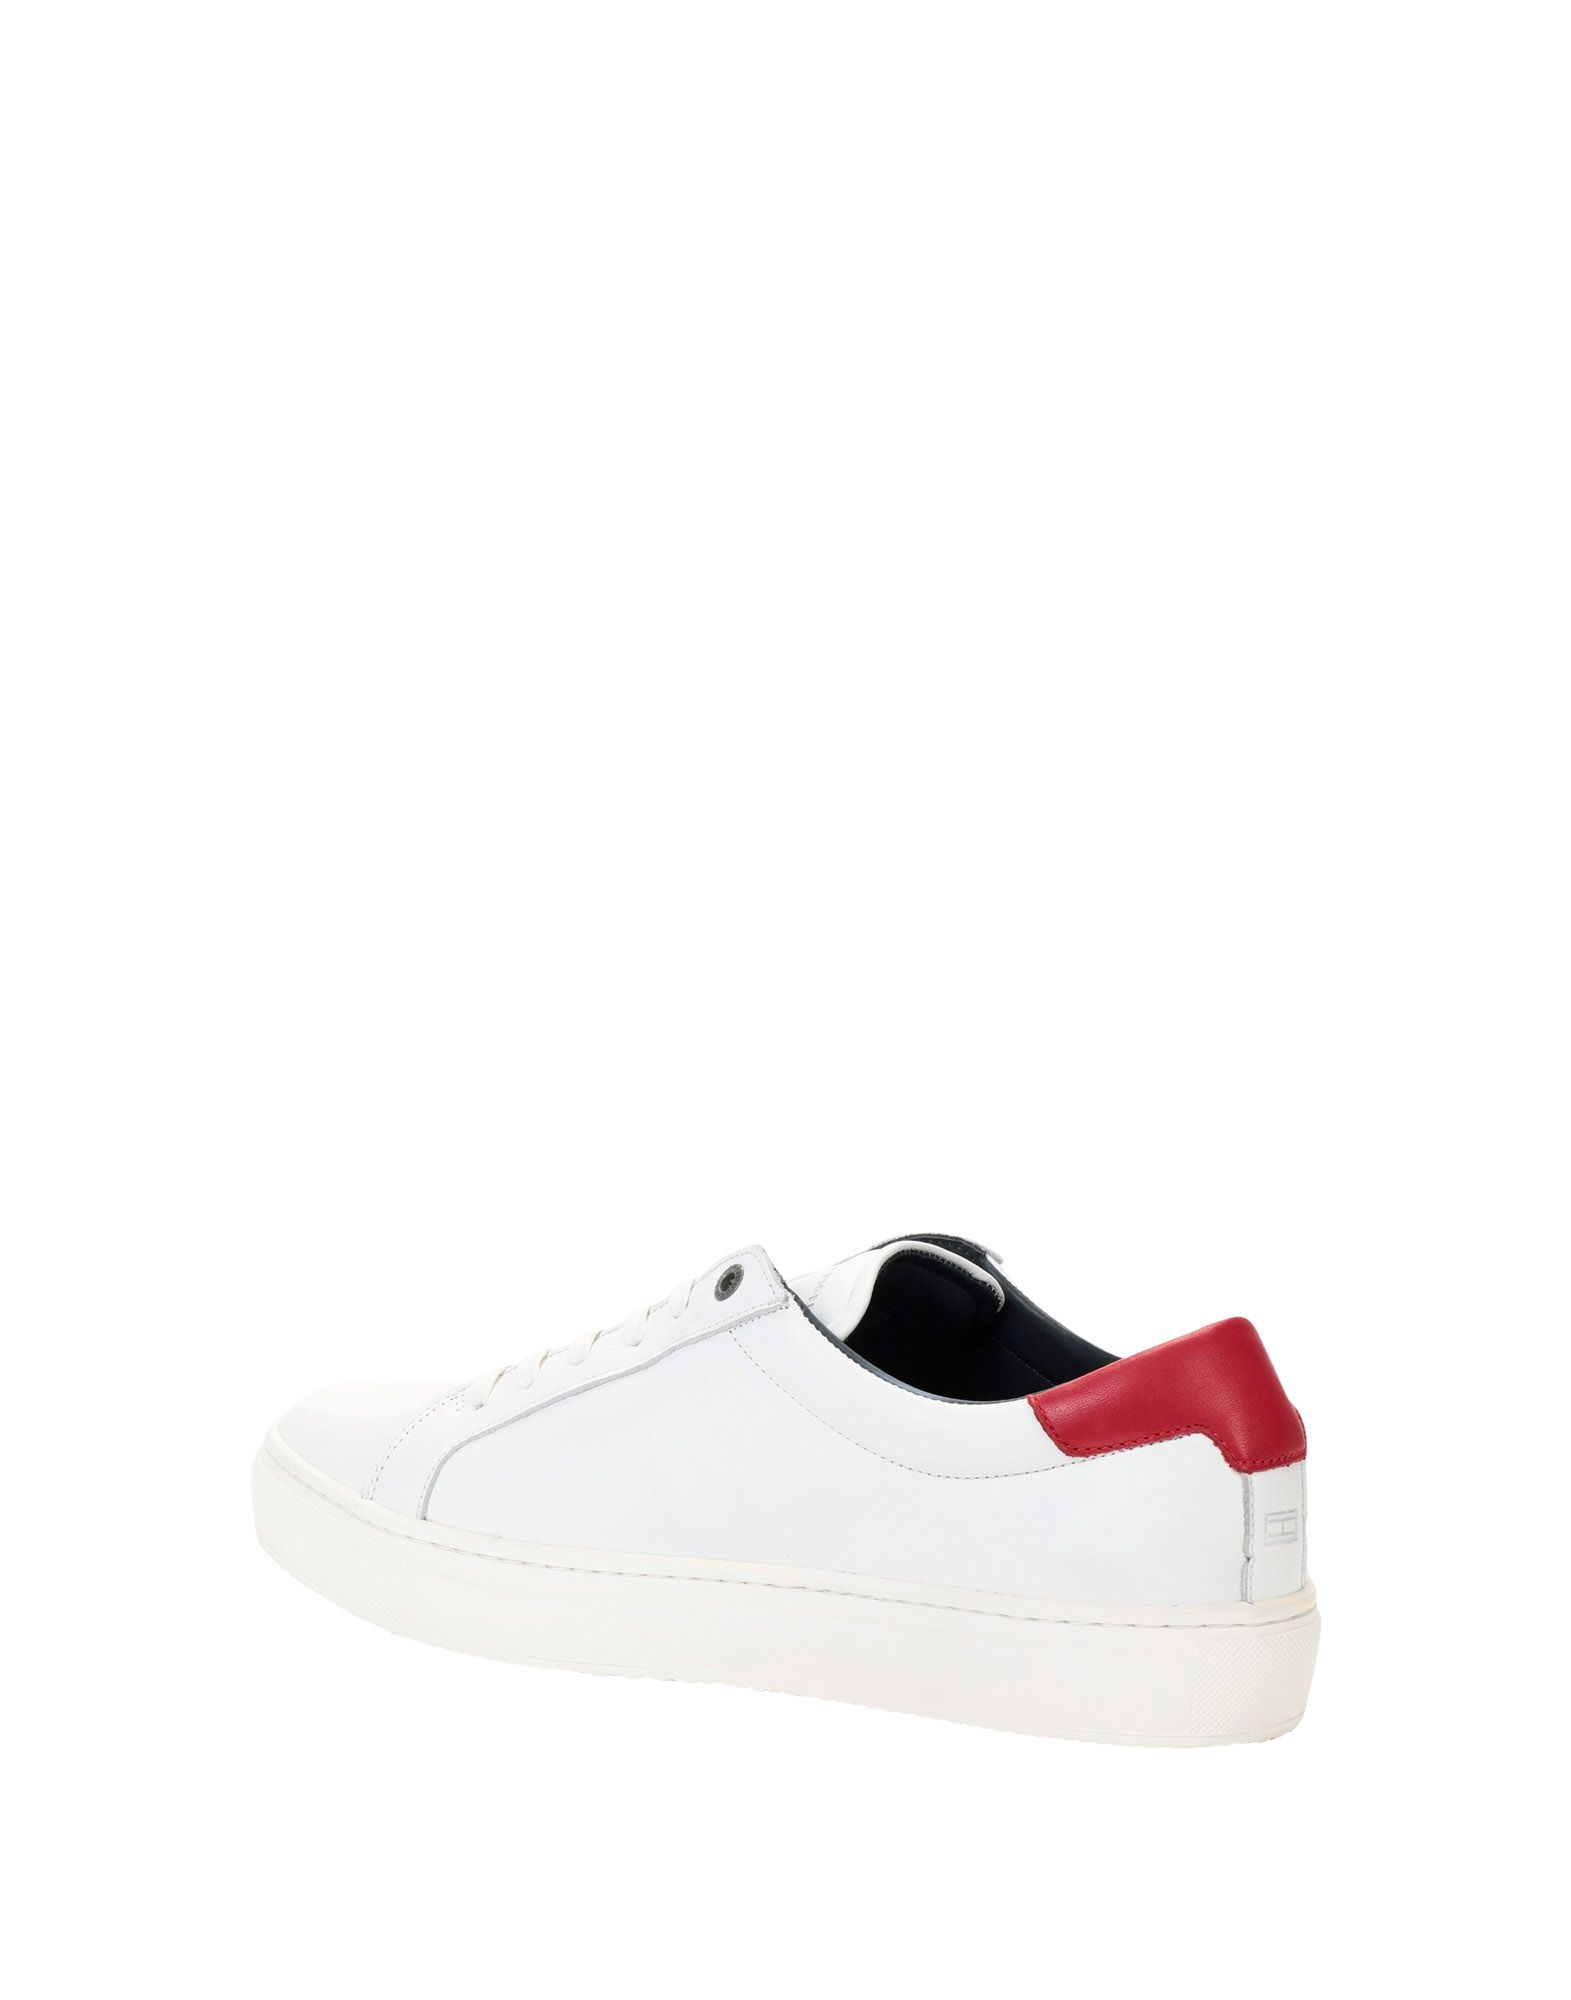 Sneakers Tommy Hilfiger Corp. Leather Detail Sneaker - Uomo - 11539186NU